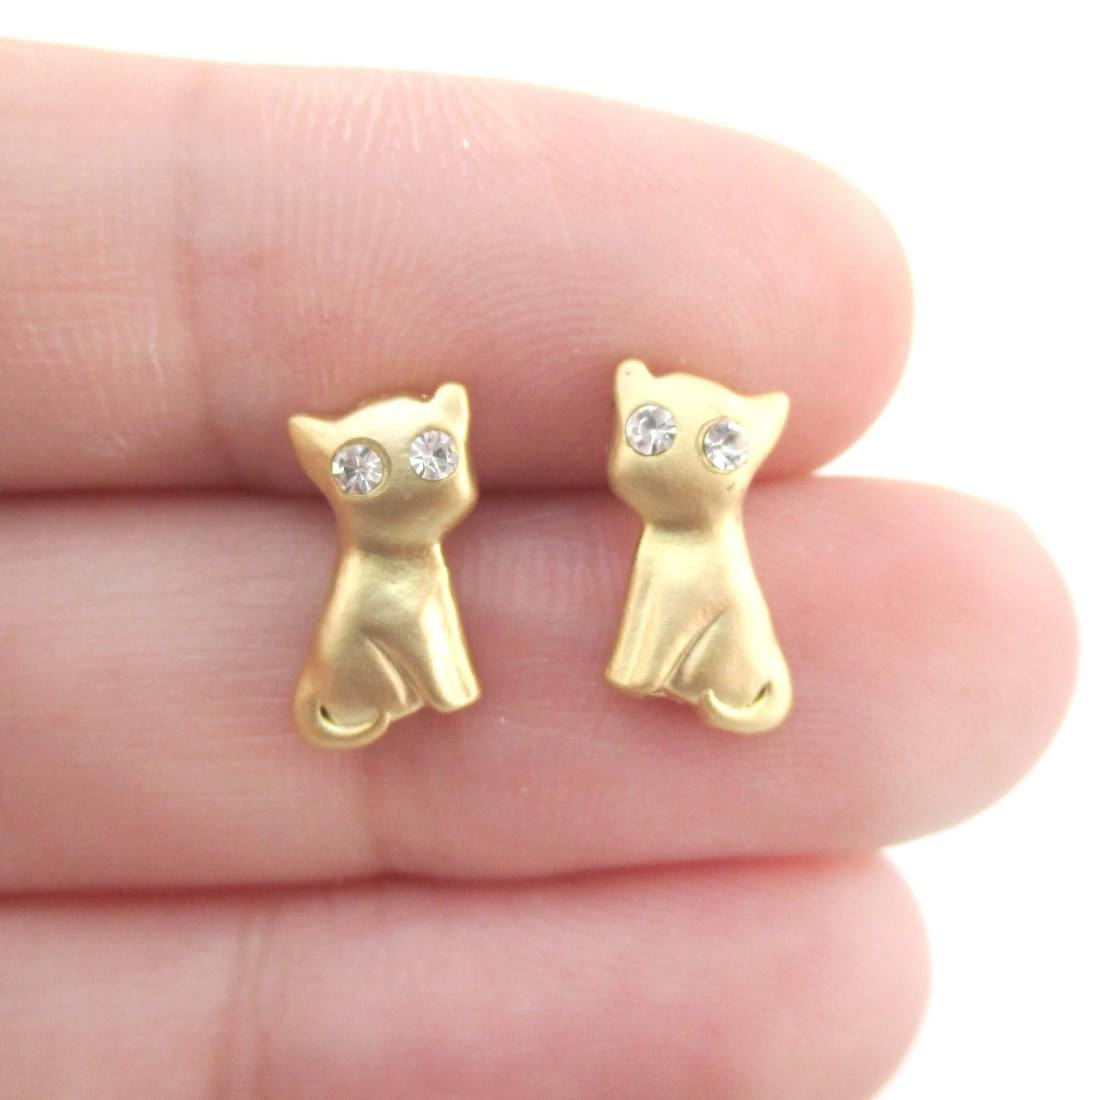 Kitty Cat Shaped Stud Earrings in Gold with Rhinestones